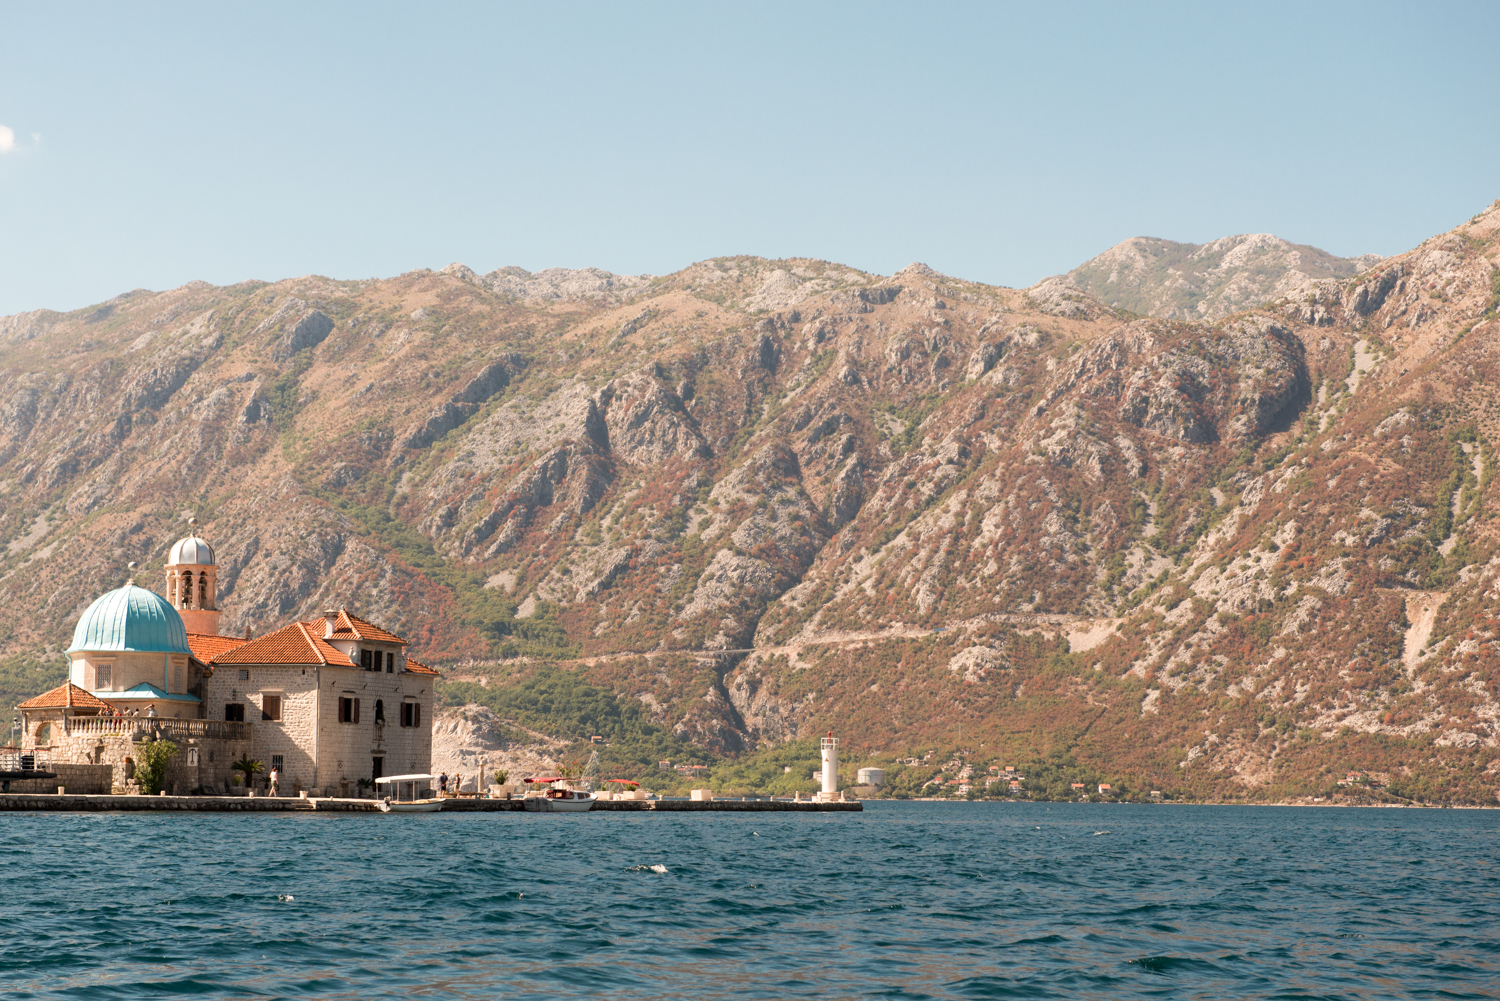 Our Lady of the Rocks island, with its beautiful little church, lies just off the coast from Perast